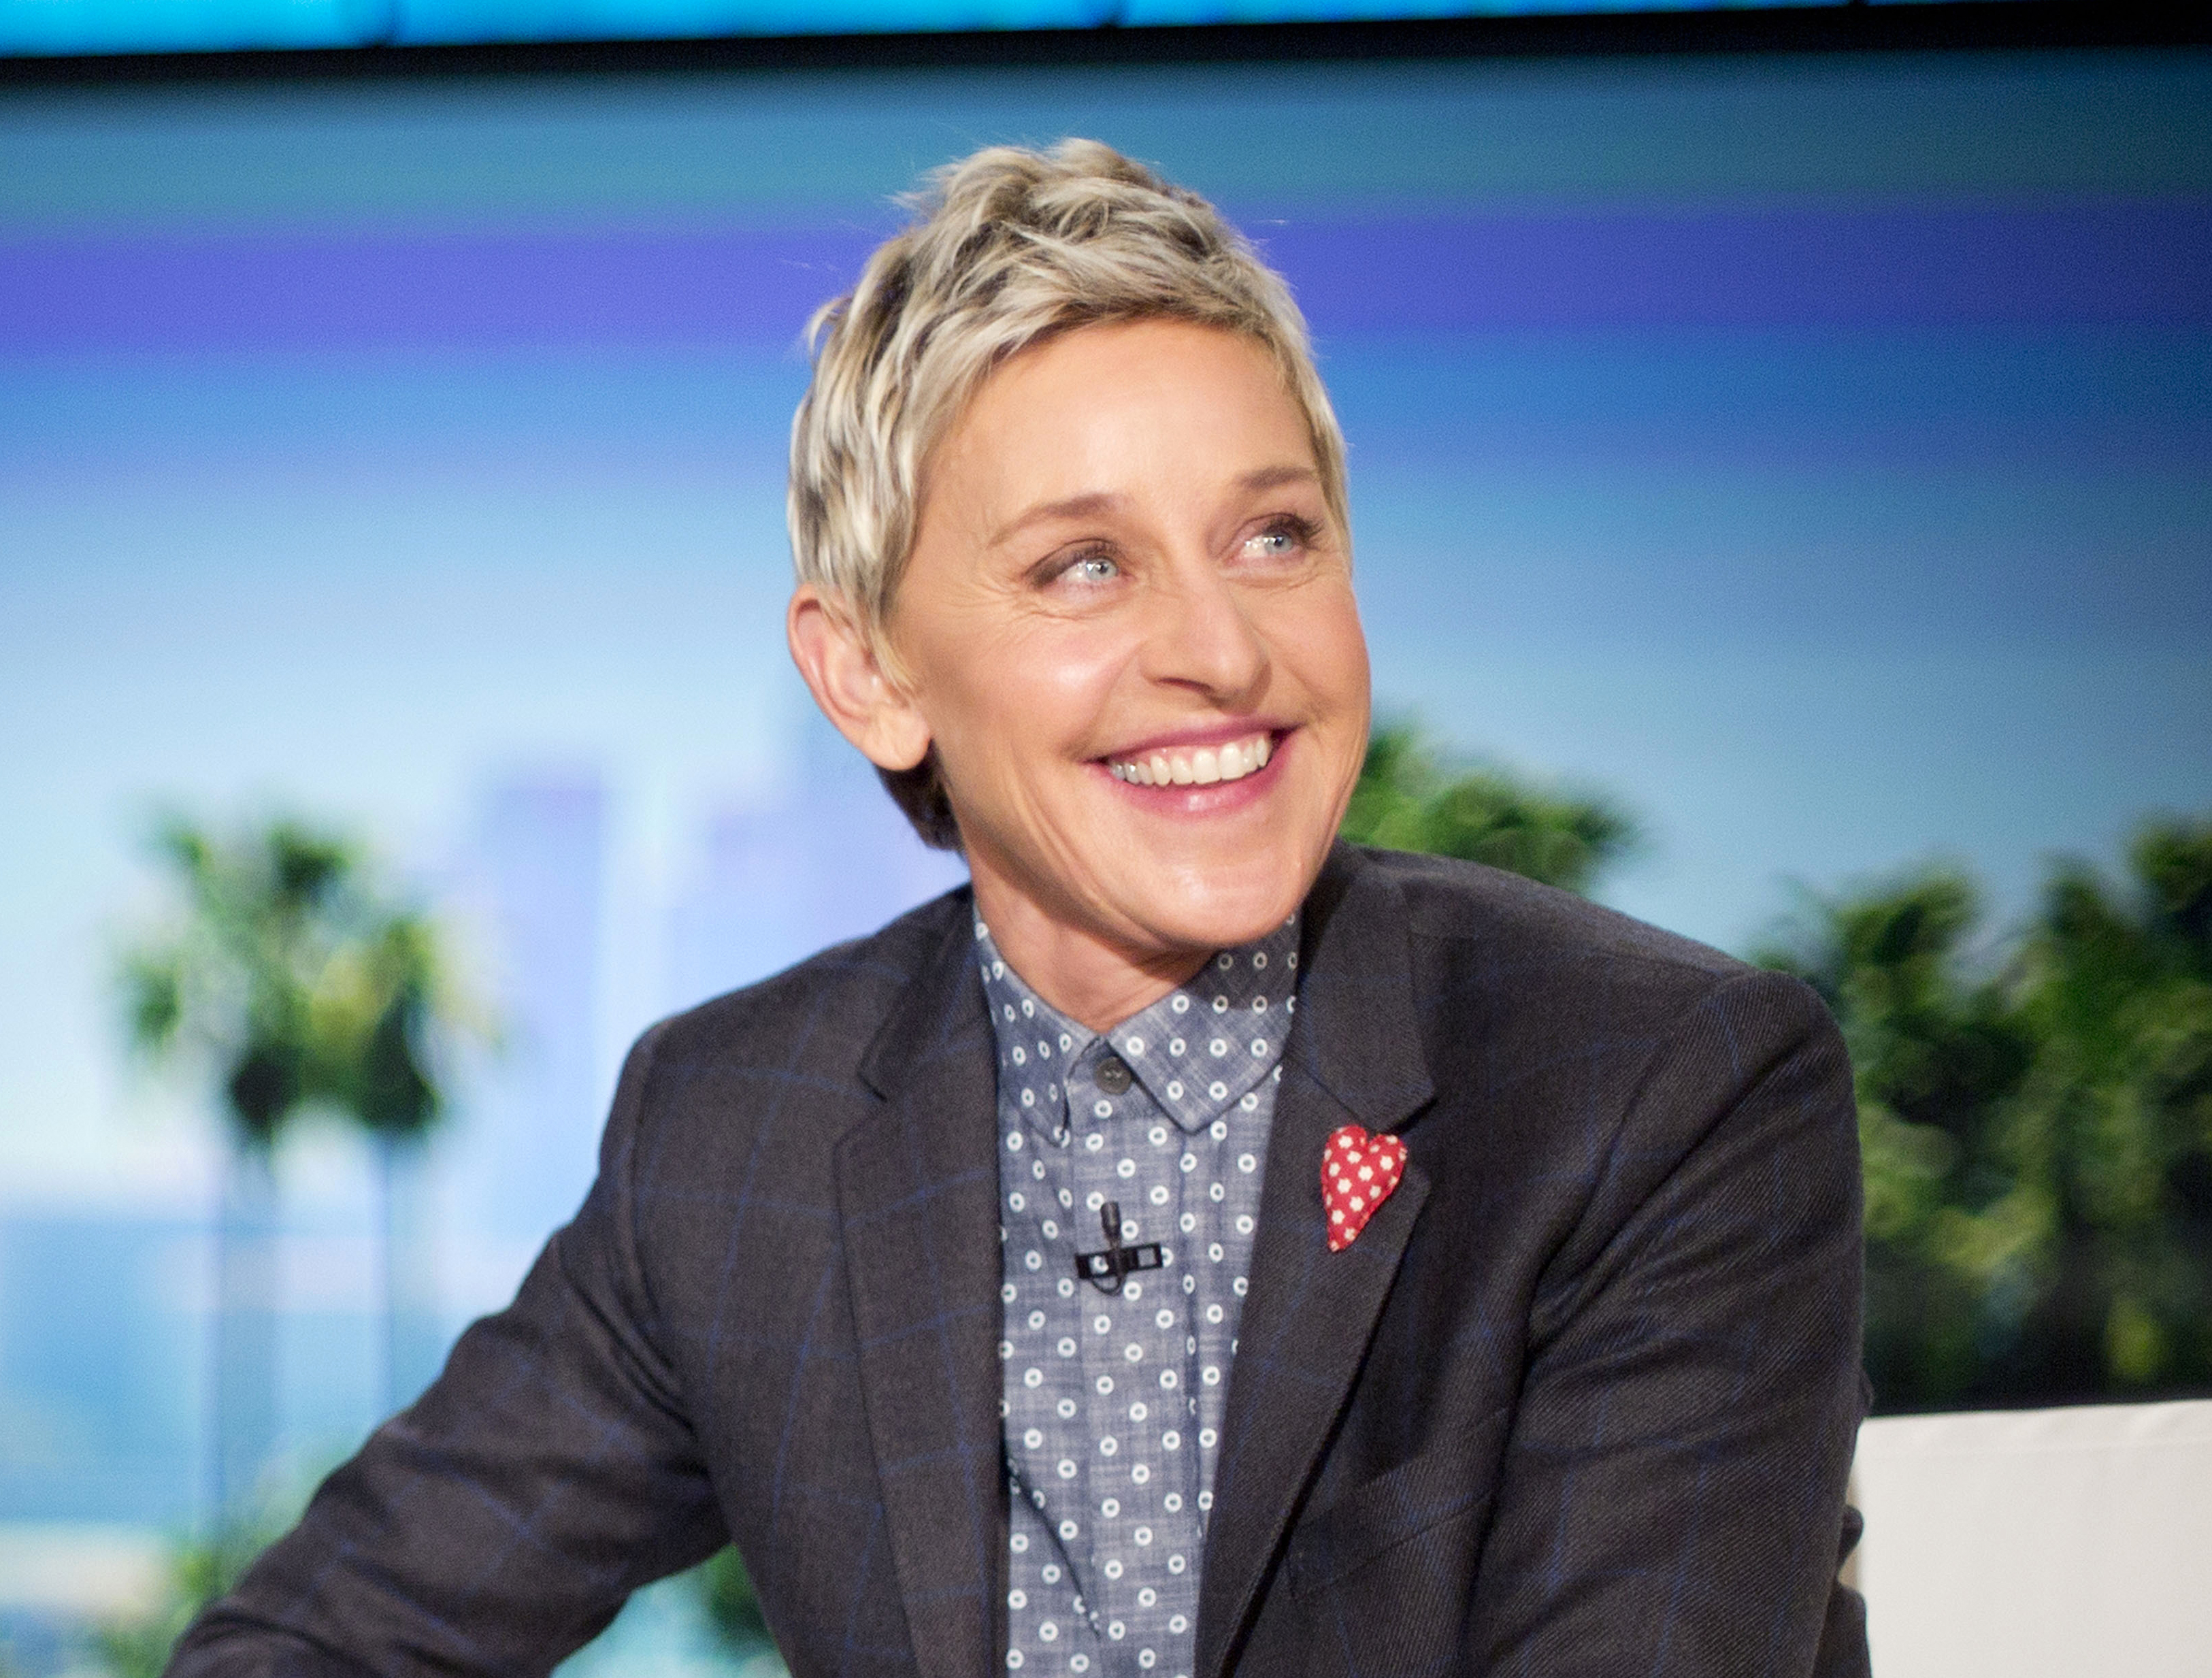 Ellen DeGeneres denied entrance to White House after forgetting ID